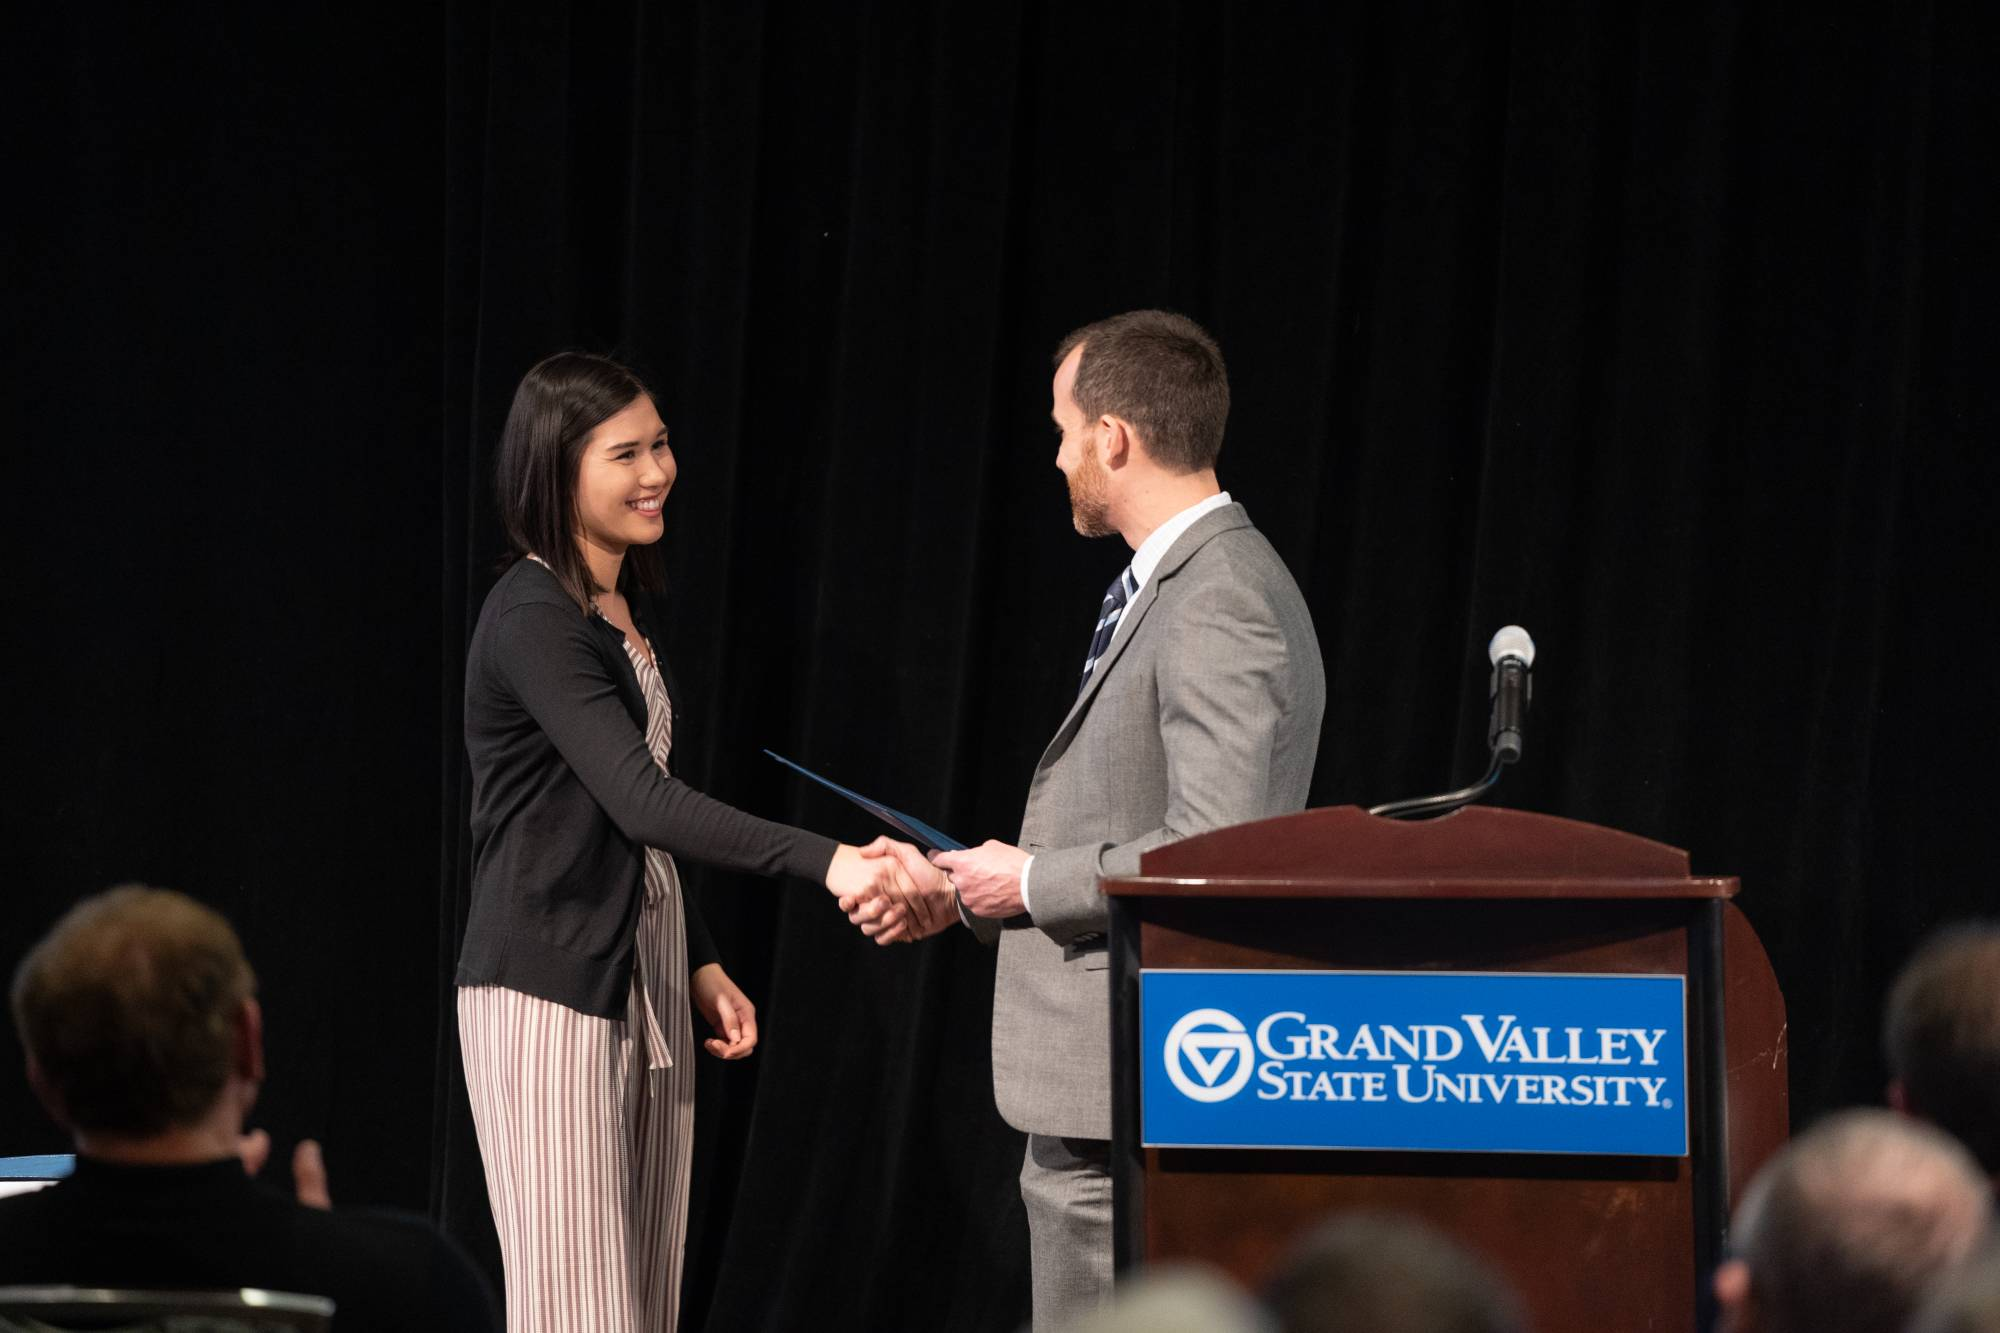 Professor Cataldo congratulating Julia Arhns for winning this year's award for Outstanding Leadership and Service.